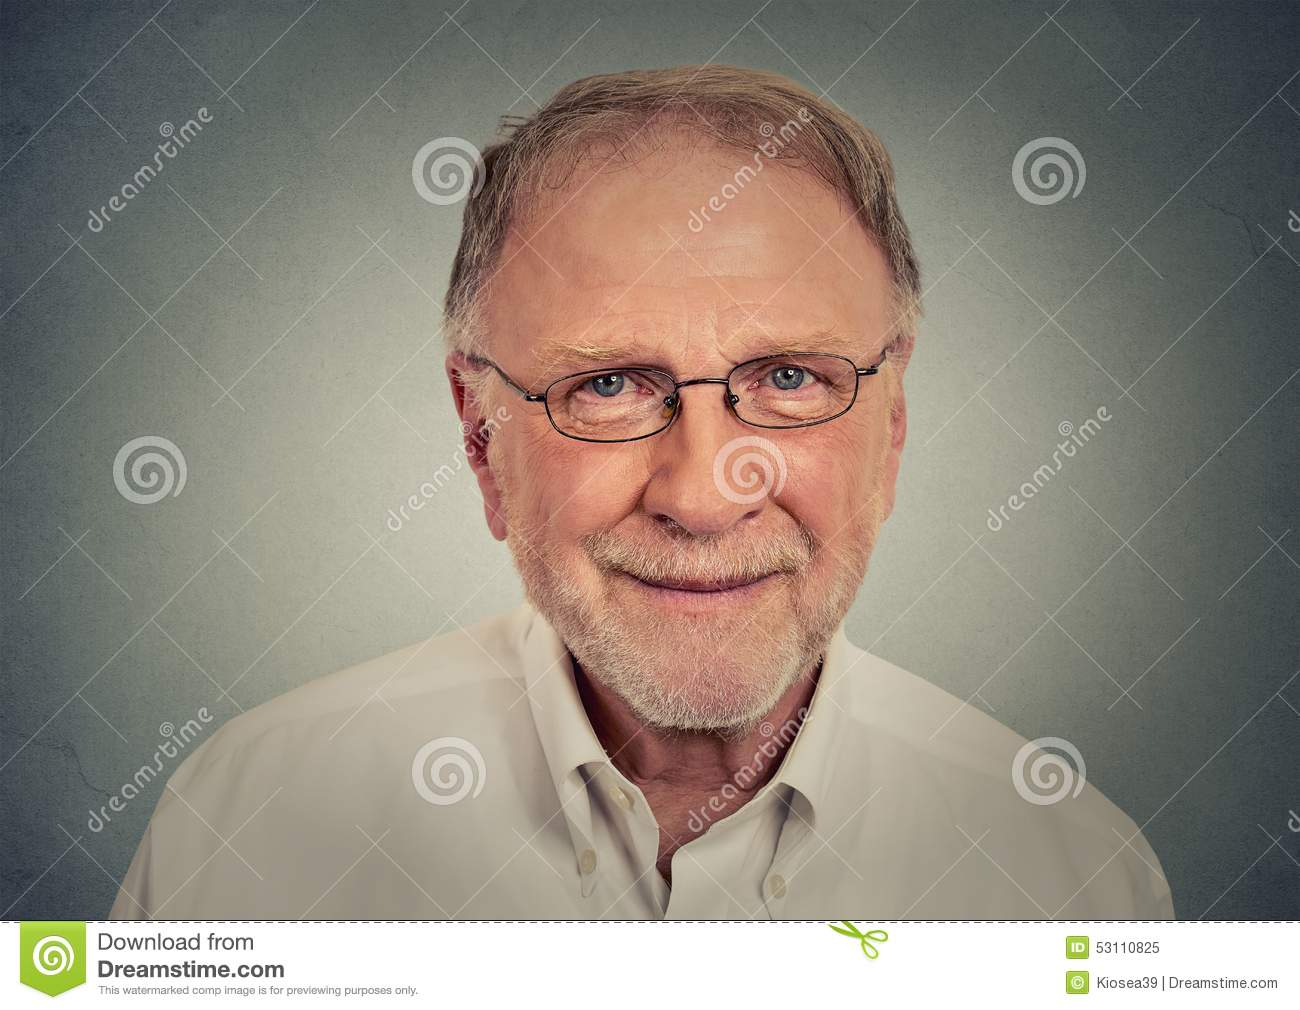 121ae8f16c Portrait of happy Old Man with glasses. On gray wall background royalty  free stock photo